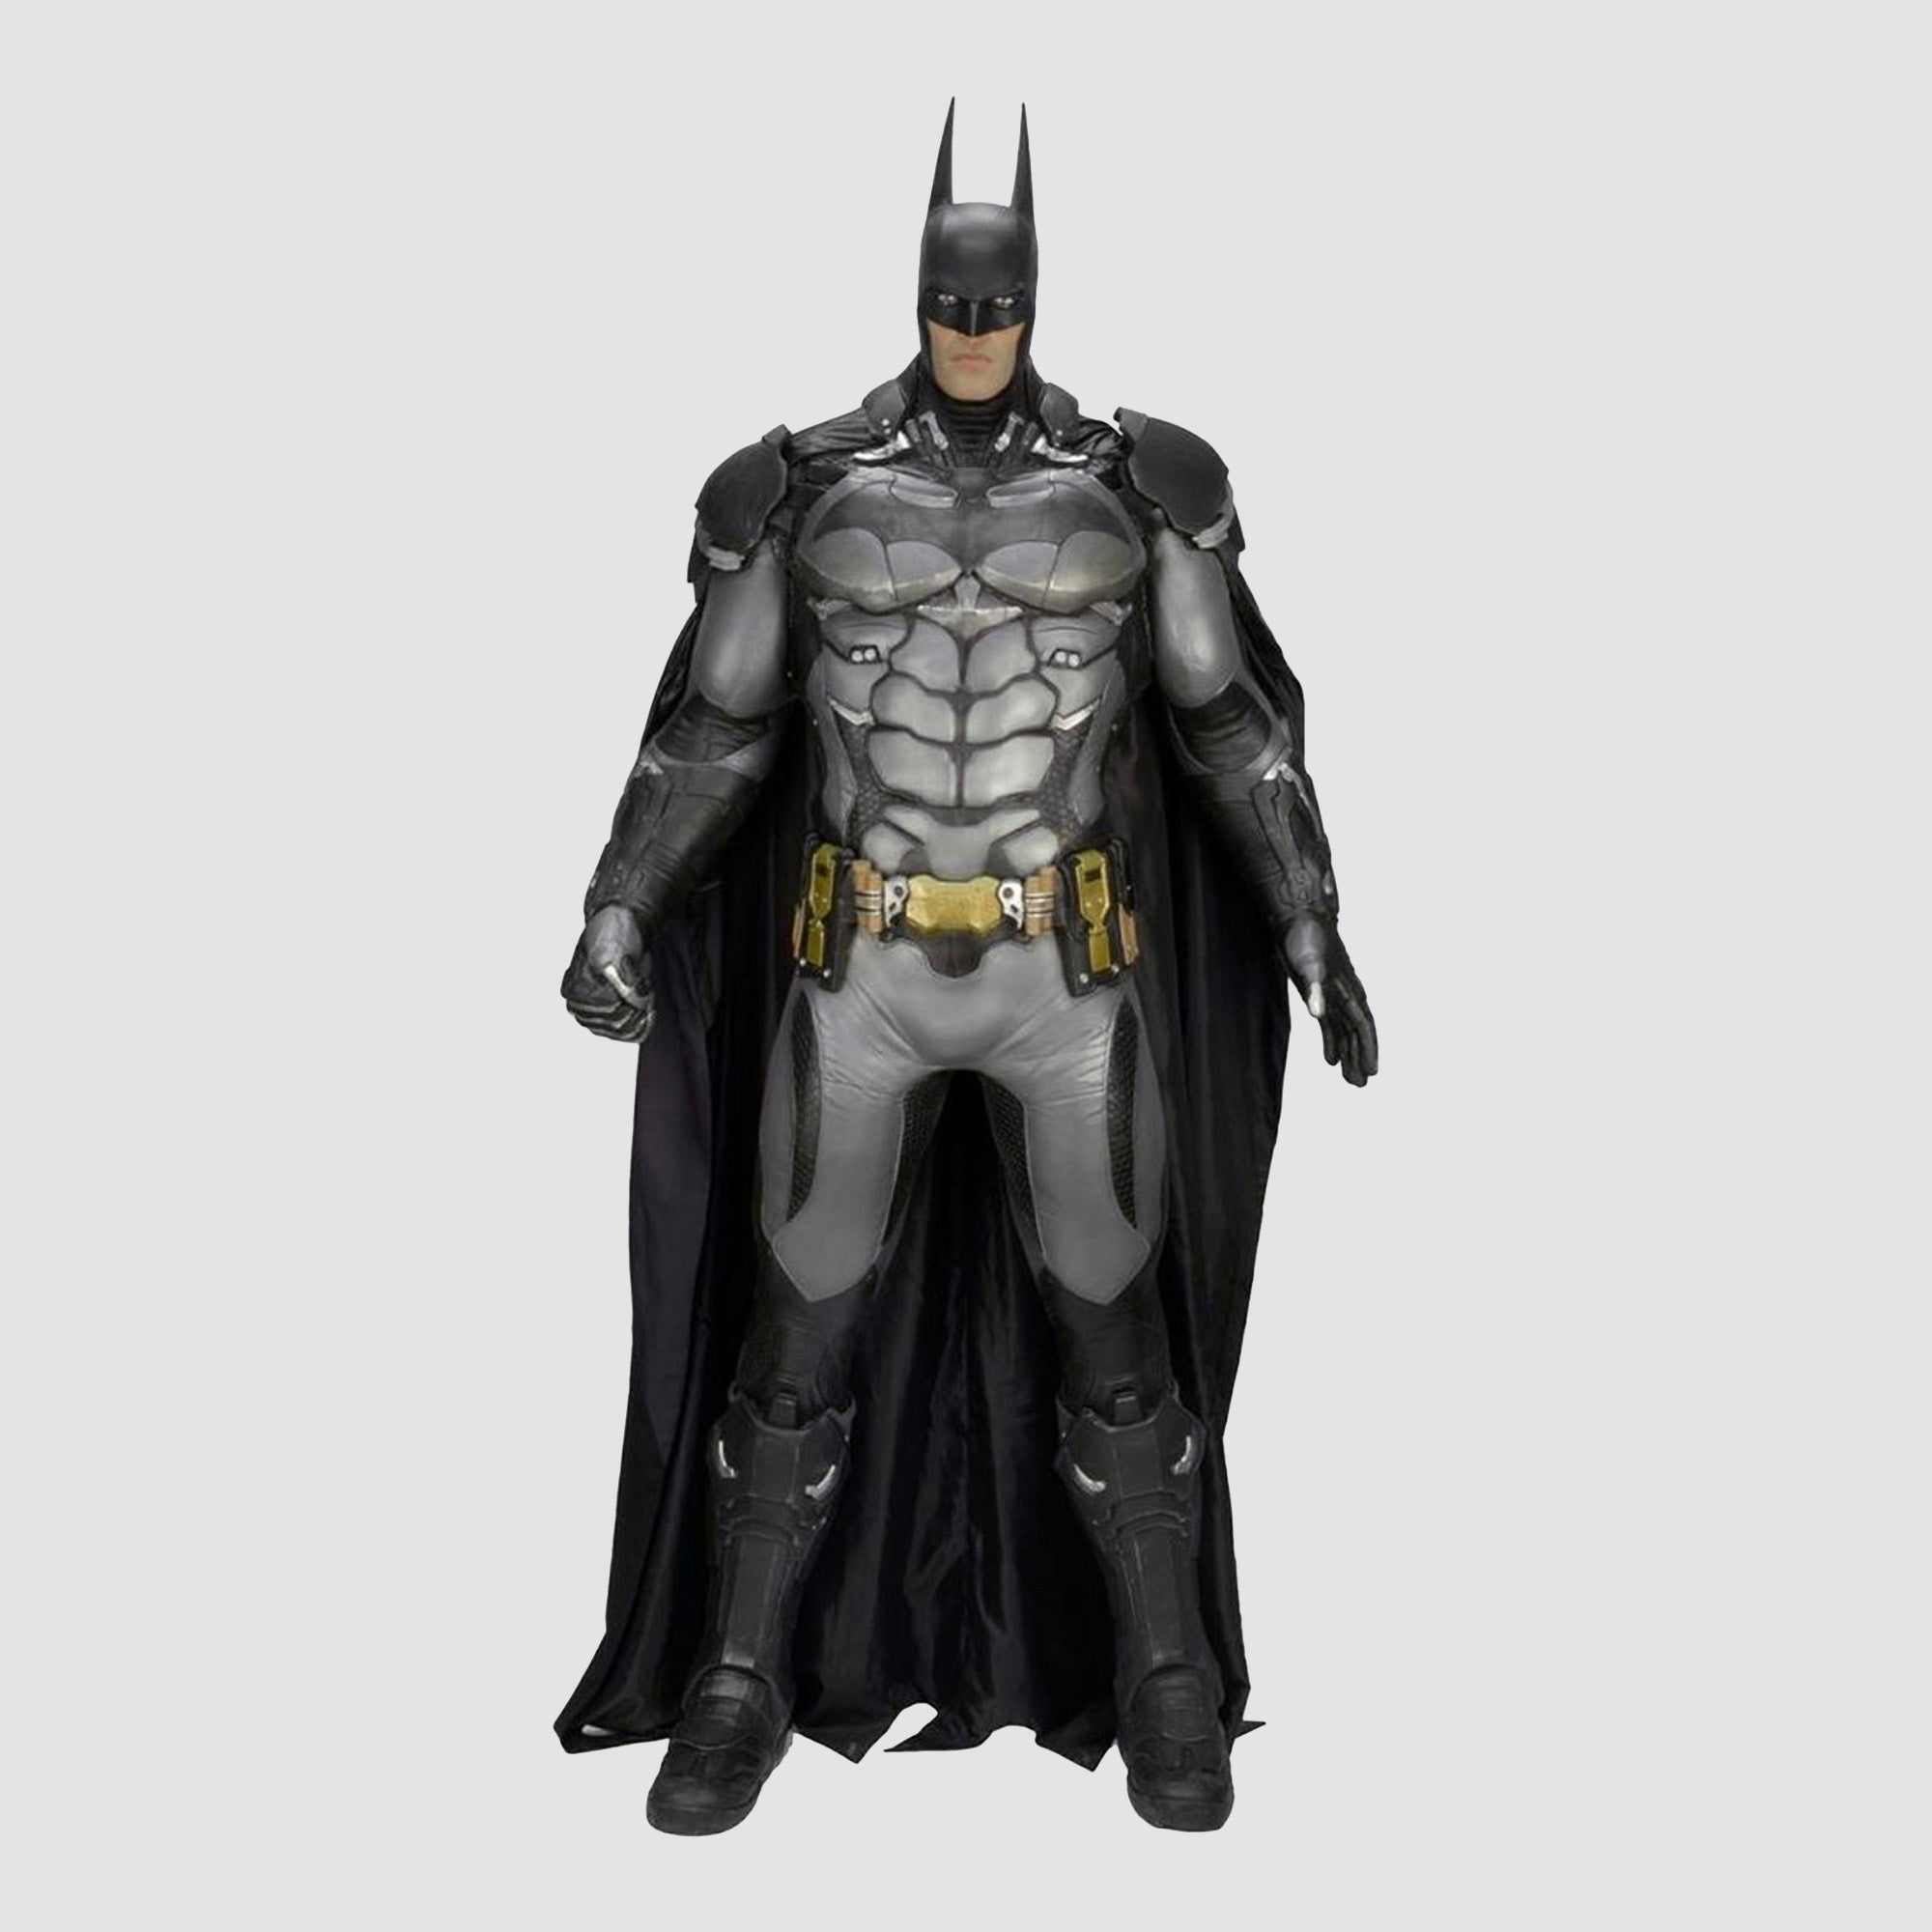 NECA: Batman Arkham Knight - Foam Replica Life Size Batman Statue Figure (Free Shipping)